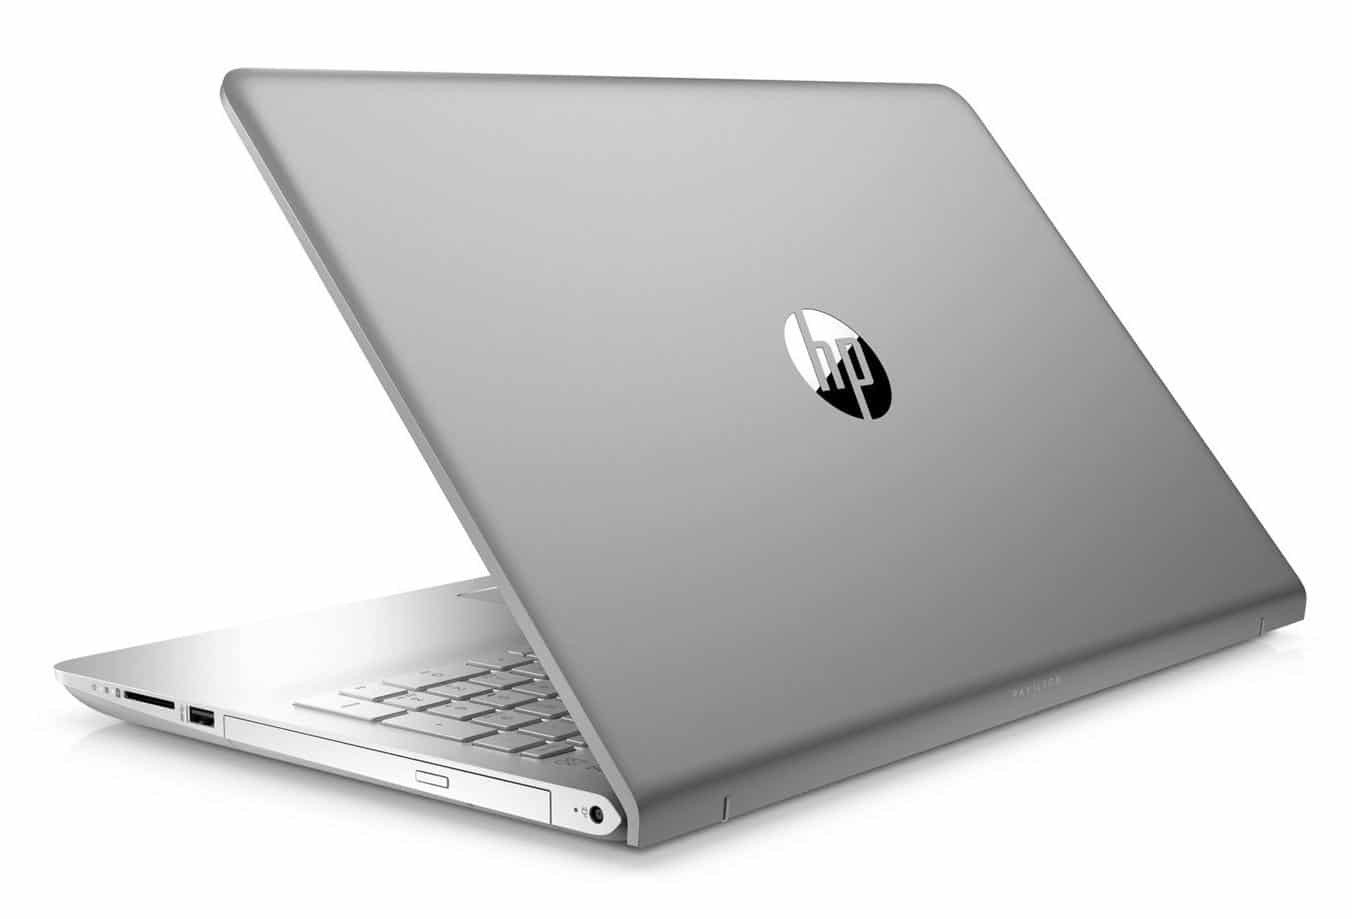 HP Pavilion 15-ck013nf, ultrabook 15 pouces SSD256 Refresh i5 940MX à 806€